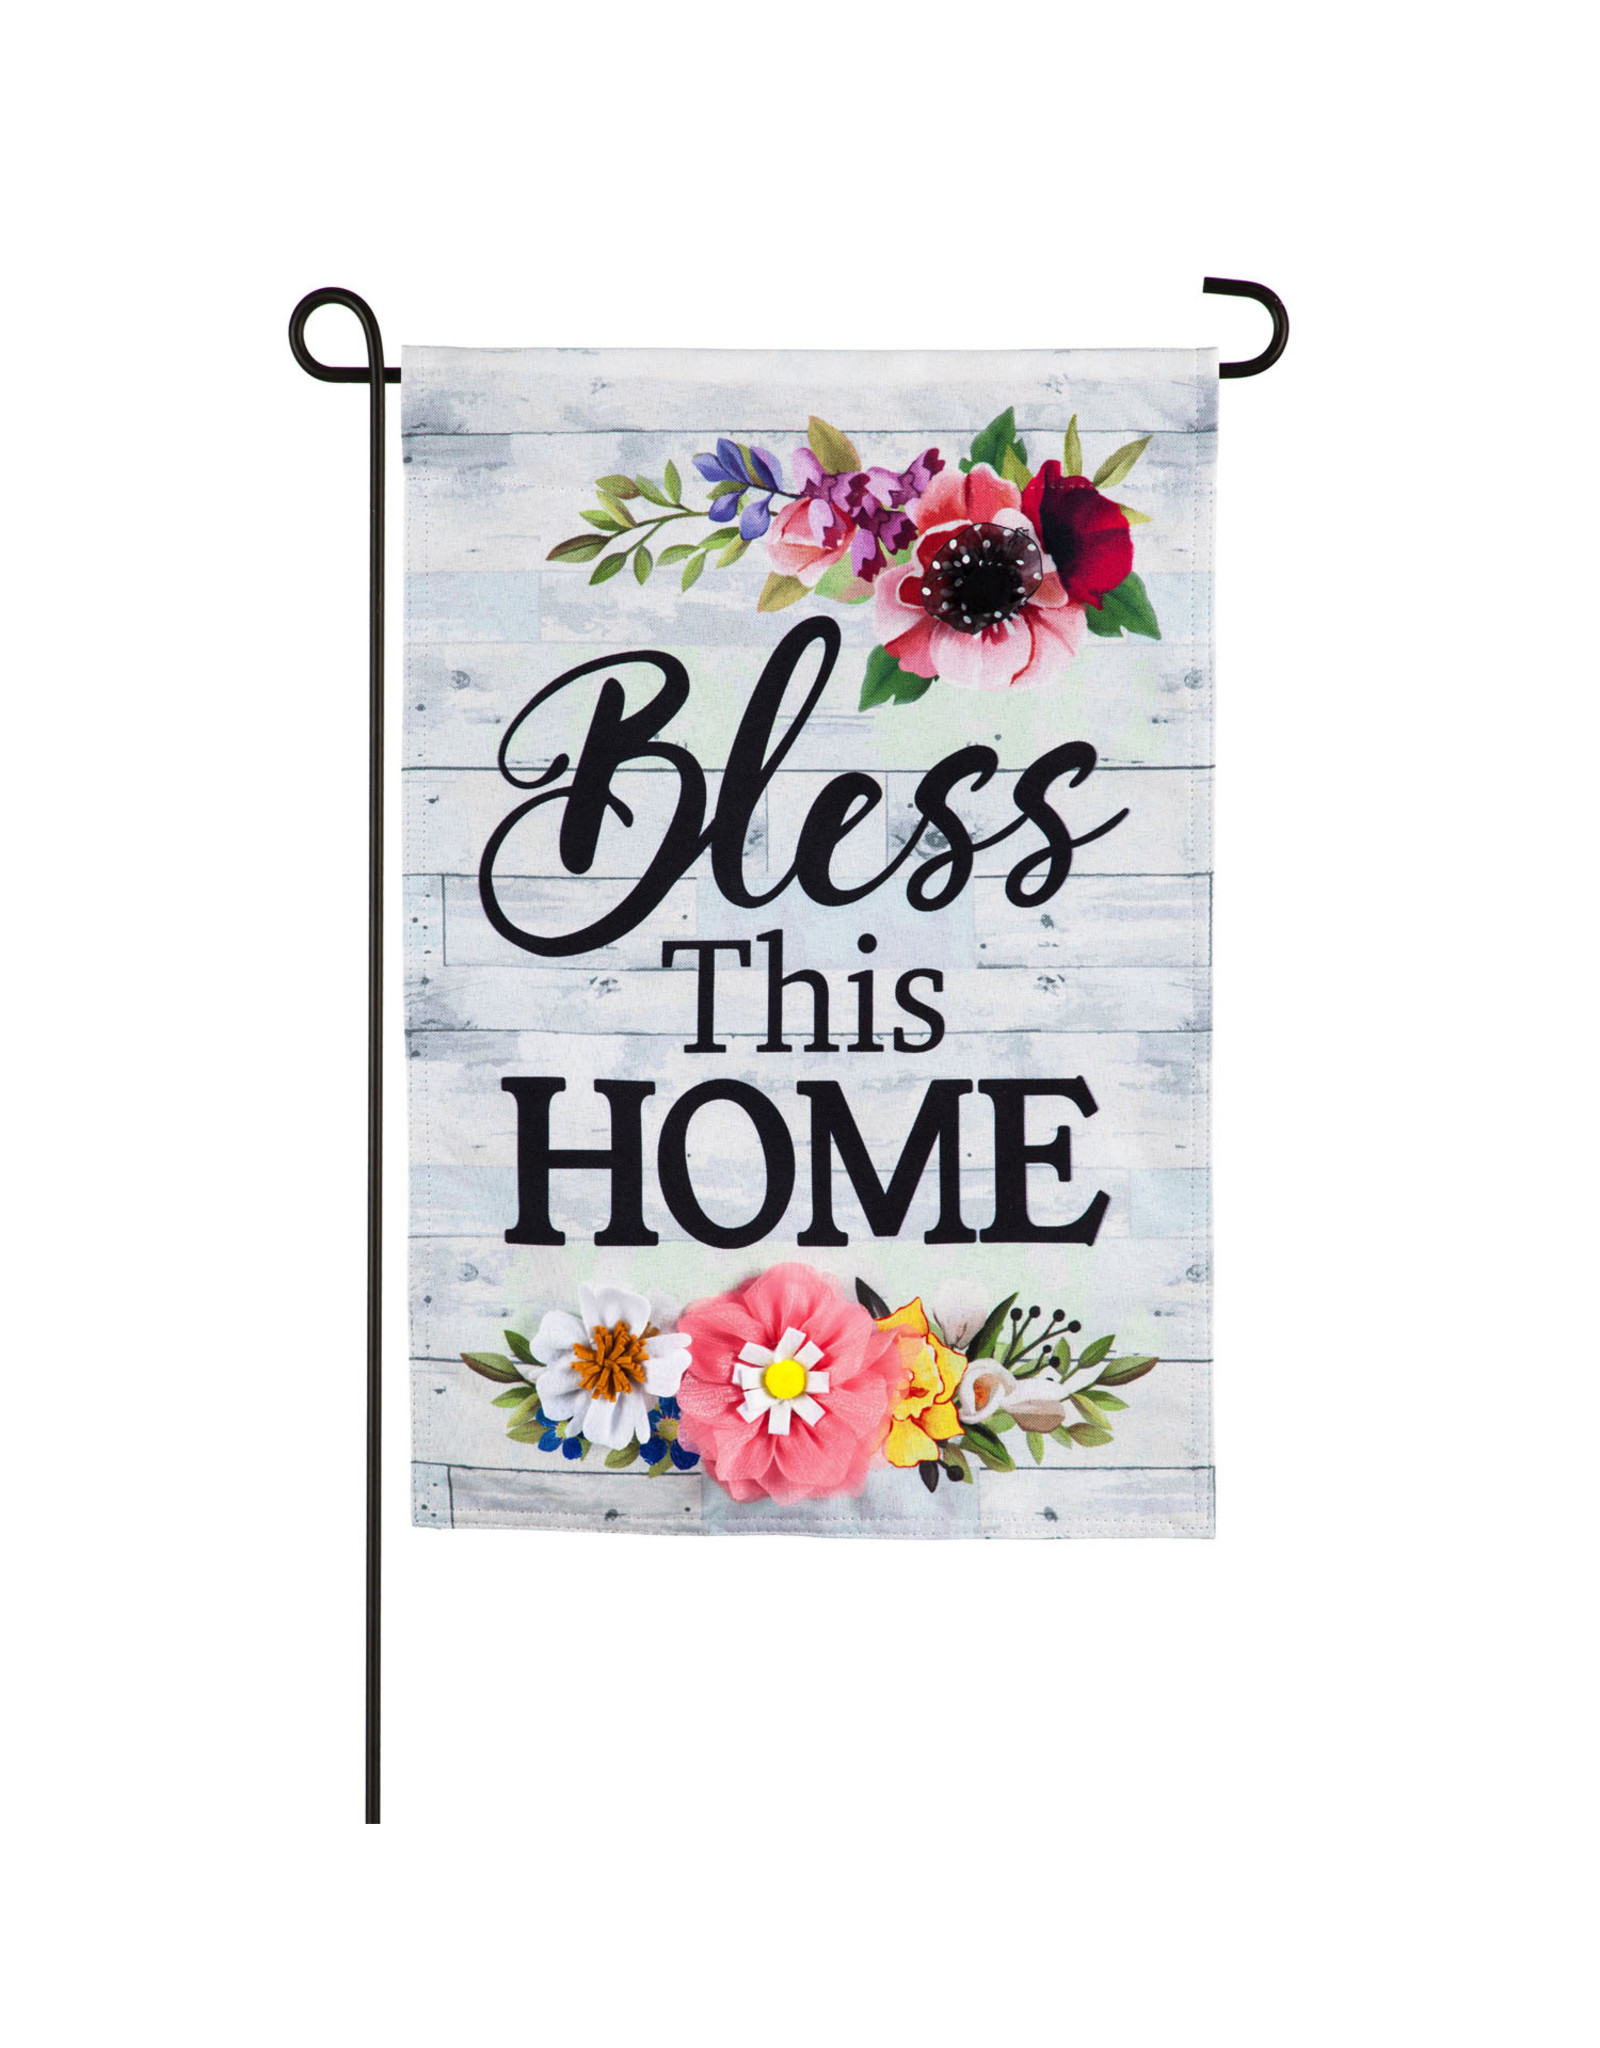 Evergreen Bless This Home 3D Embellished Garden Flag